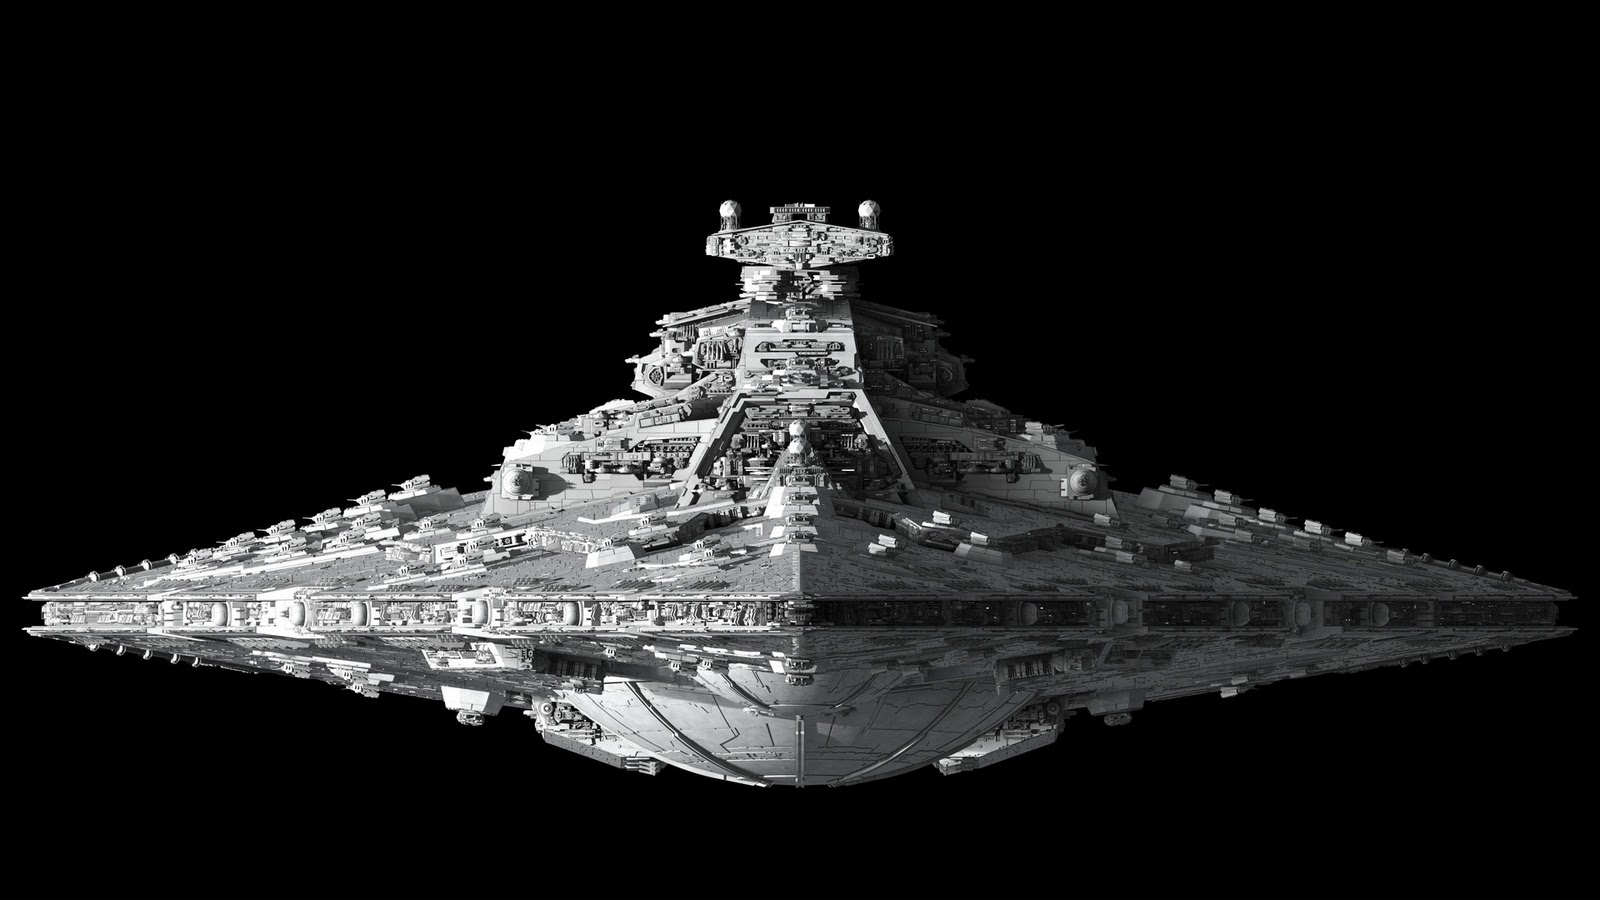 Star Wars Imperial Warship HD Wallpapers Epic Desktop Backgrounds 1600x900